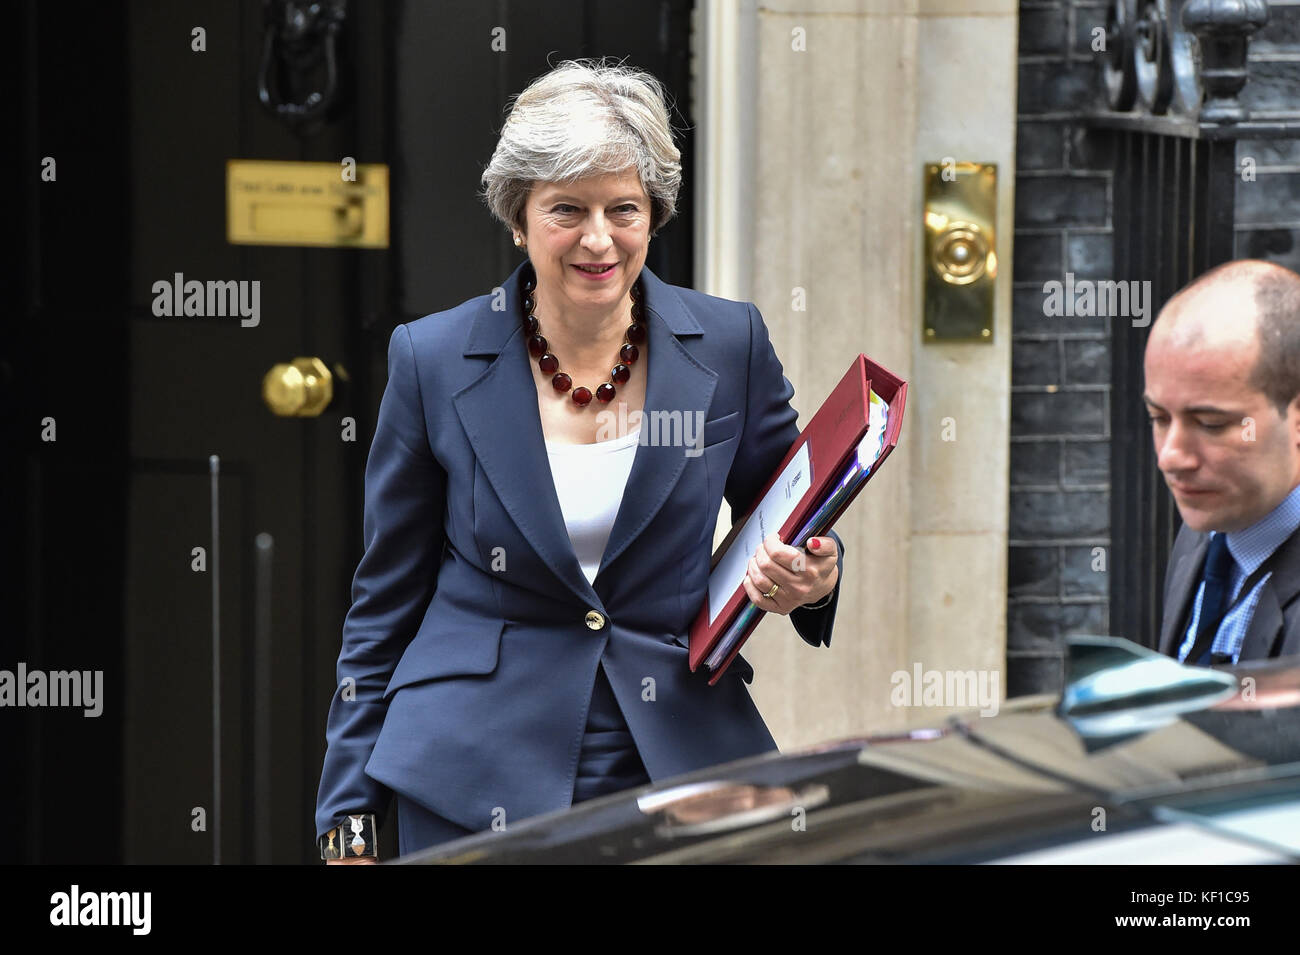 London, United Kingdom. 25th Oct, 2017. Prime Minister Theresa May leaves 10 Downing Street bound for the House - Stock Image